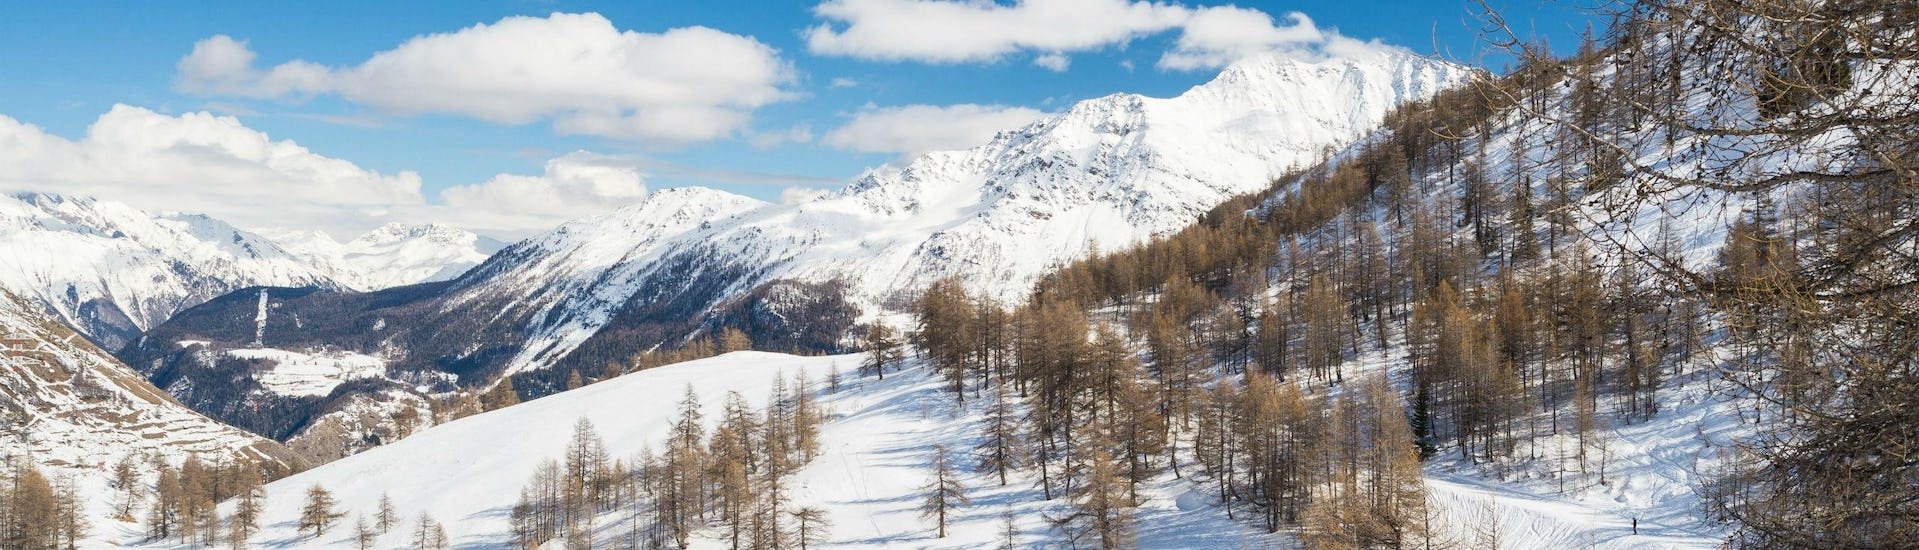 An image of the snowy mountainscape in the French ski resort of La Rosière, where aspiring skiers can book ski lessons with the local ski schools.